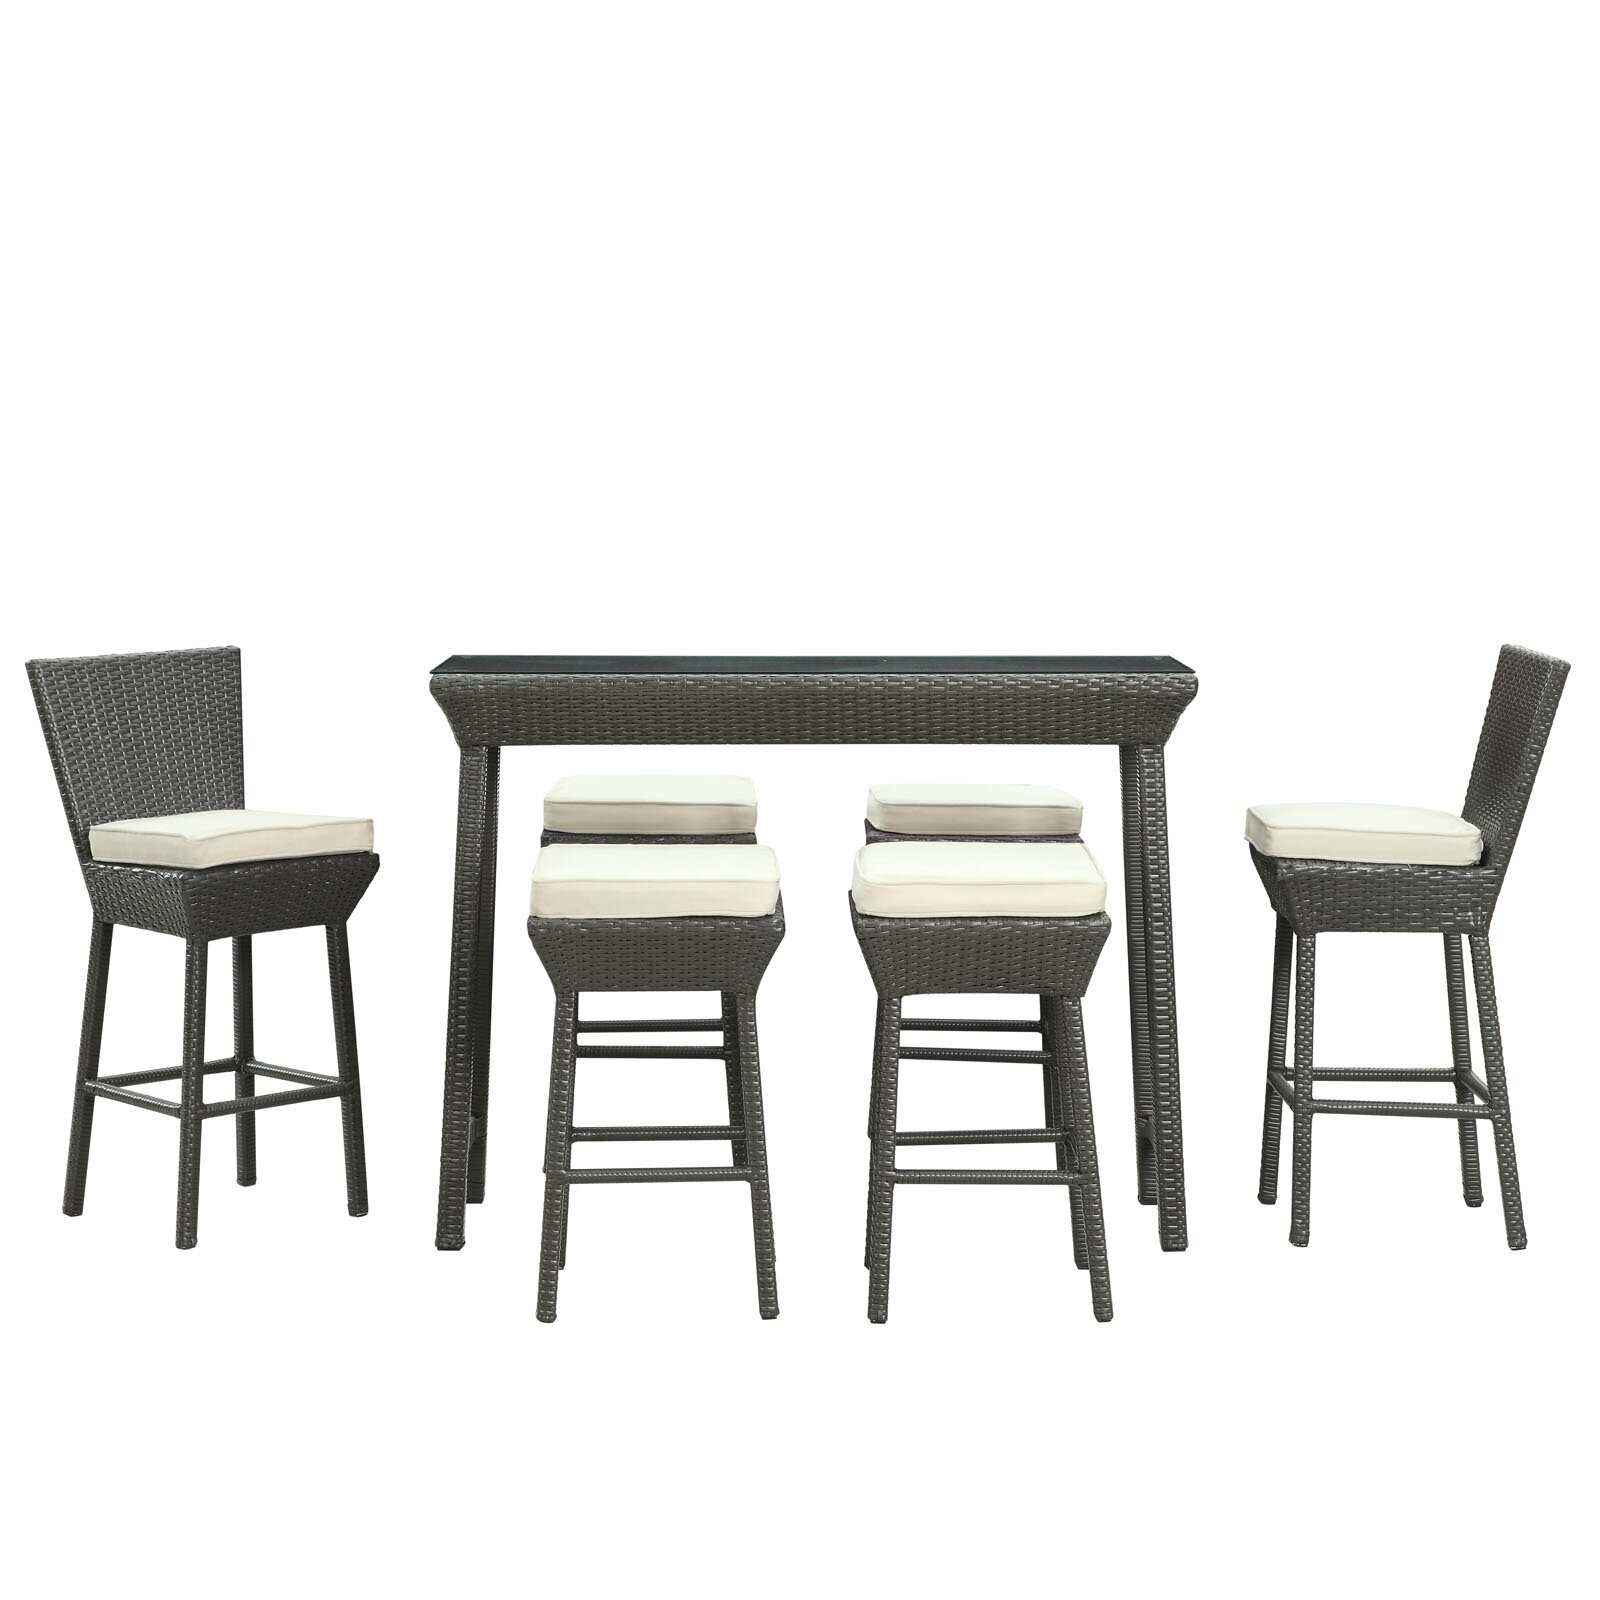 Napa Gathering Collection Modway Napa Outdoor Piece Bar Set With Cushions